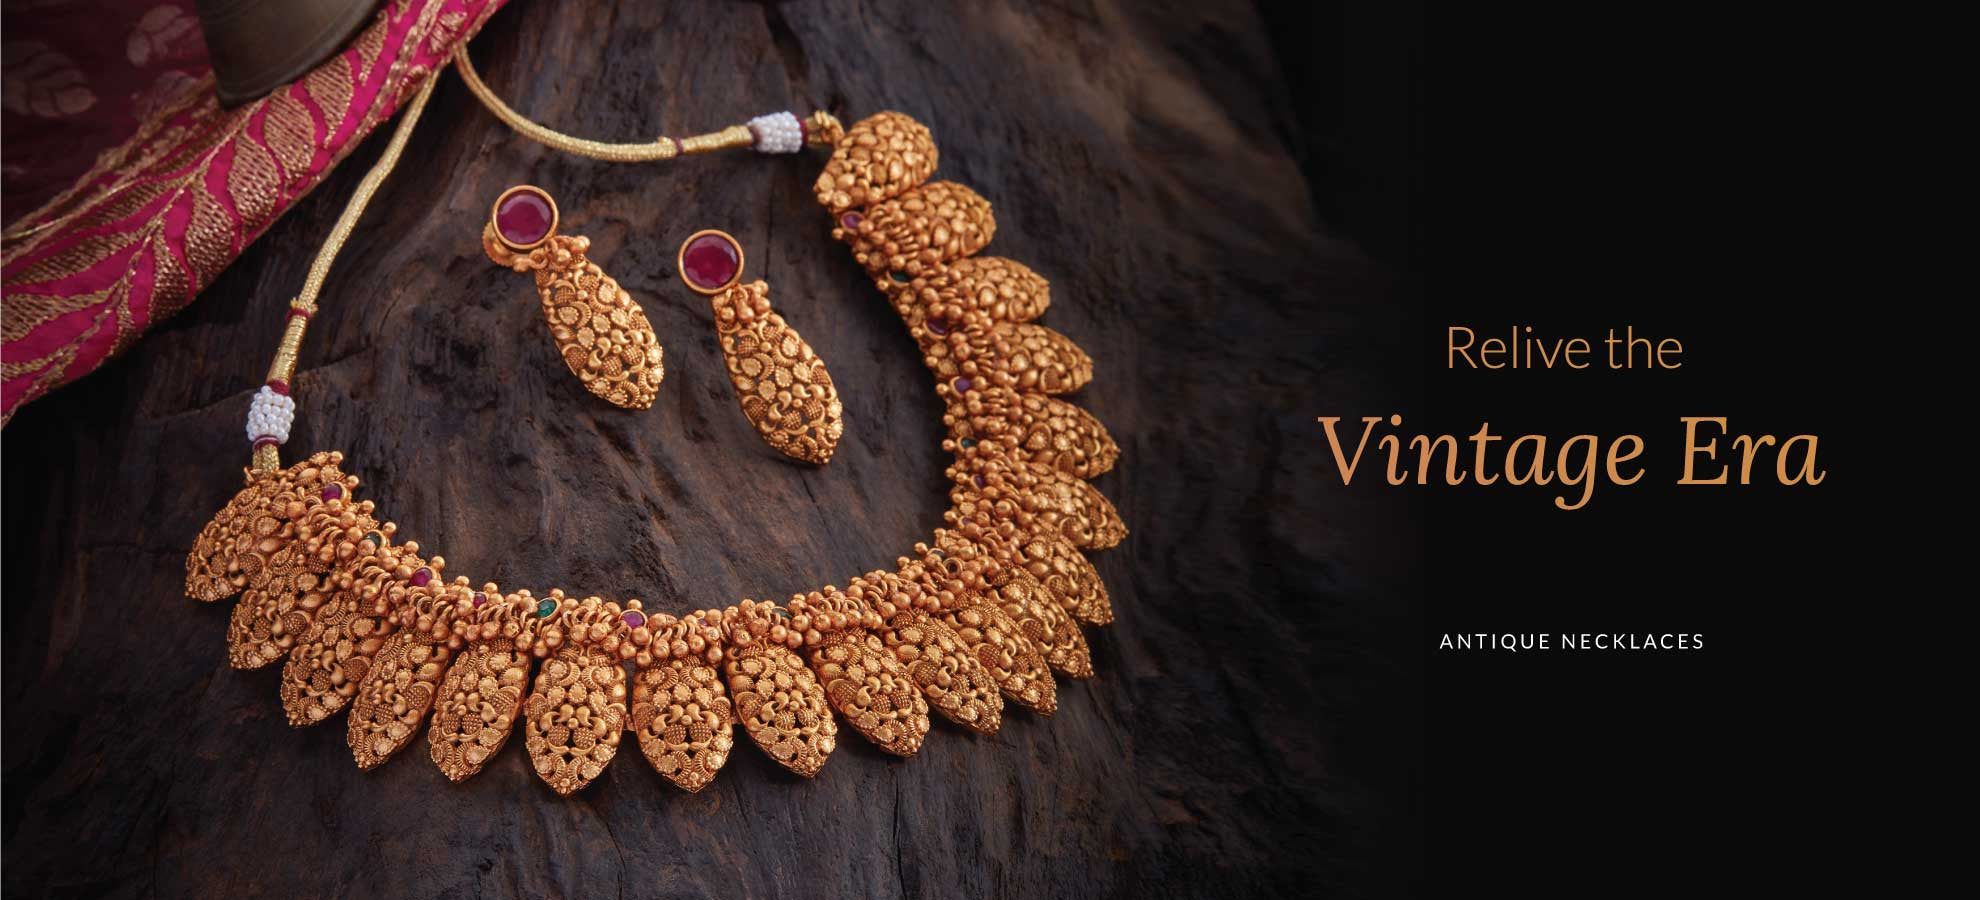 Banner design for jewellery - Online Shopping For Fashion Imitation Artificial Jewellery For Women Kushal S Fashion Jewellery